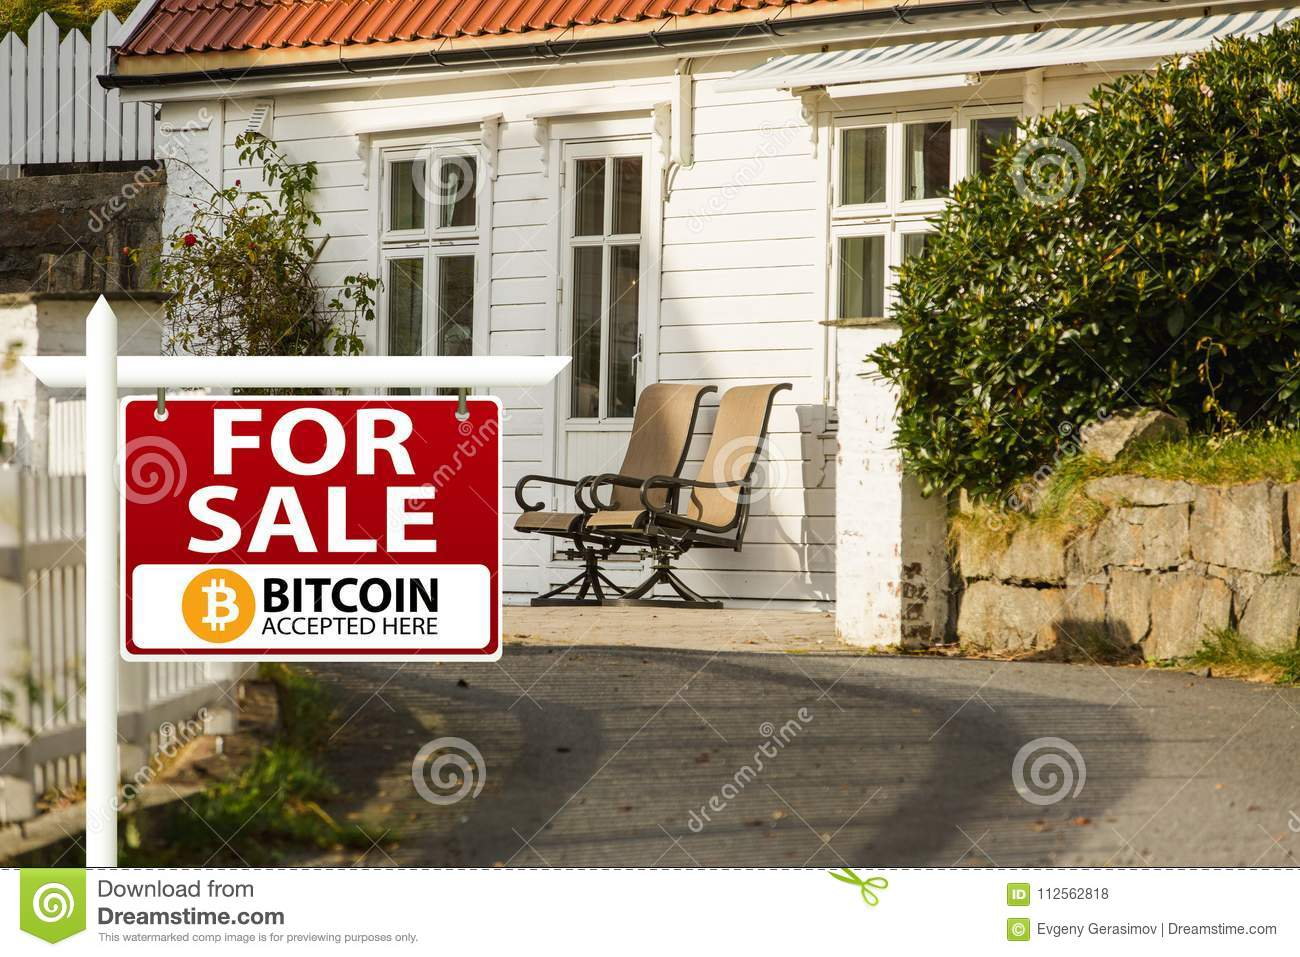 Bitcoin are accepted as payment